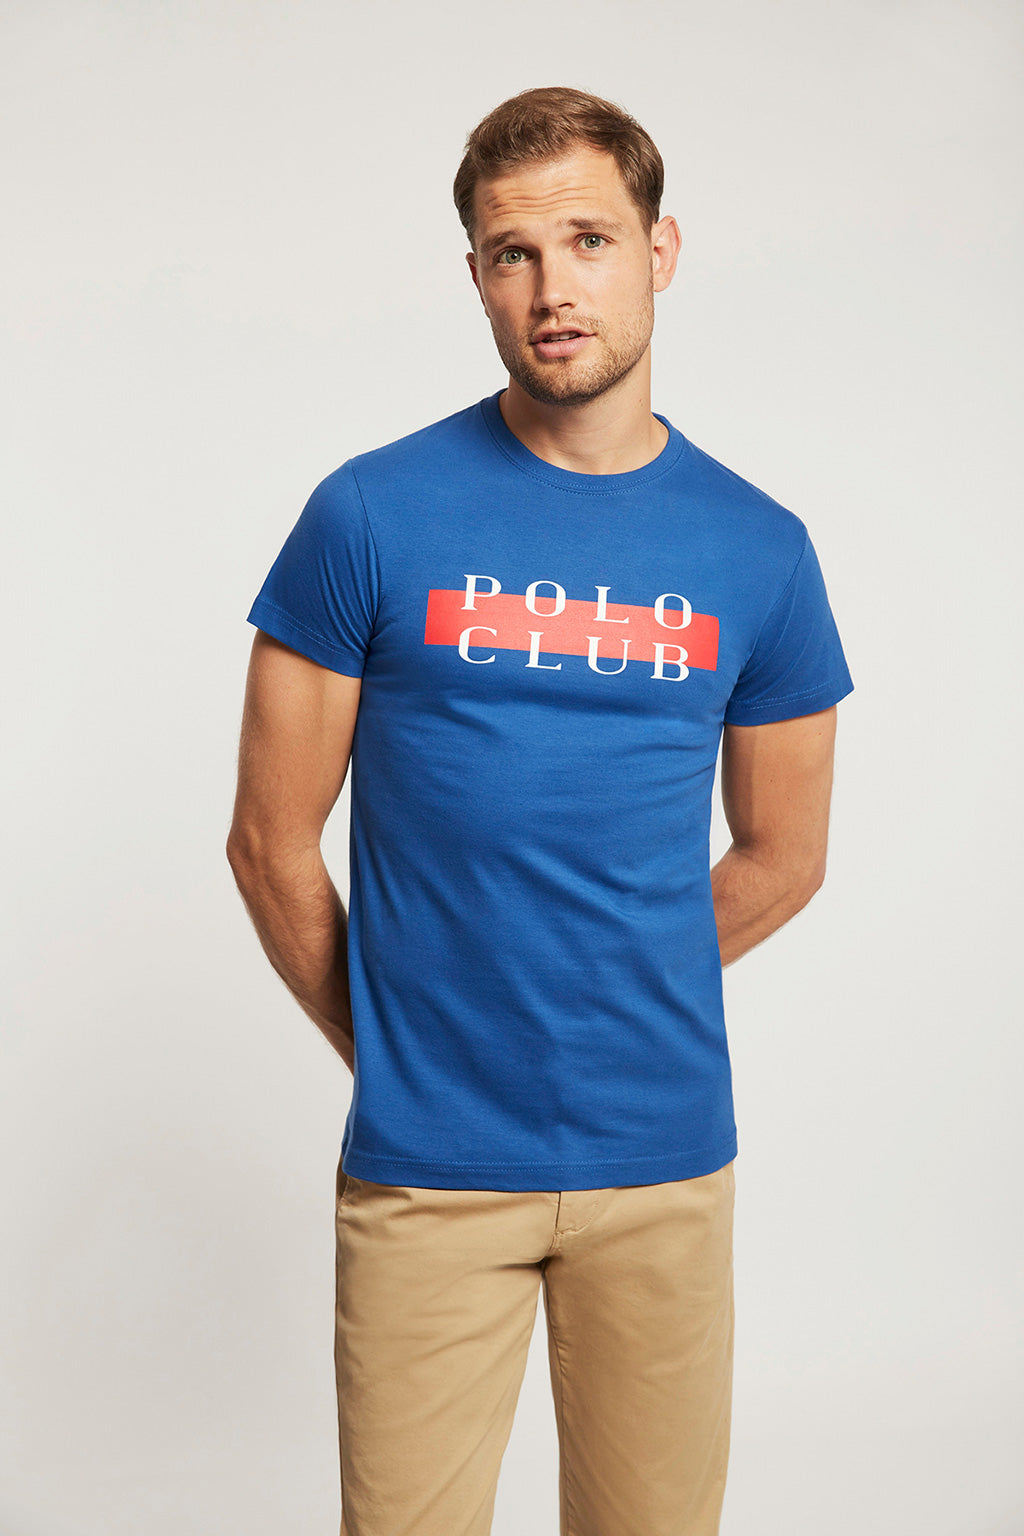 Blue tee with POLO CLUB print